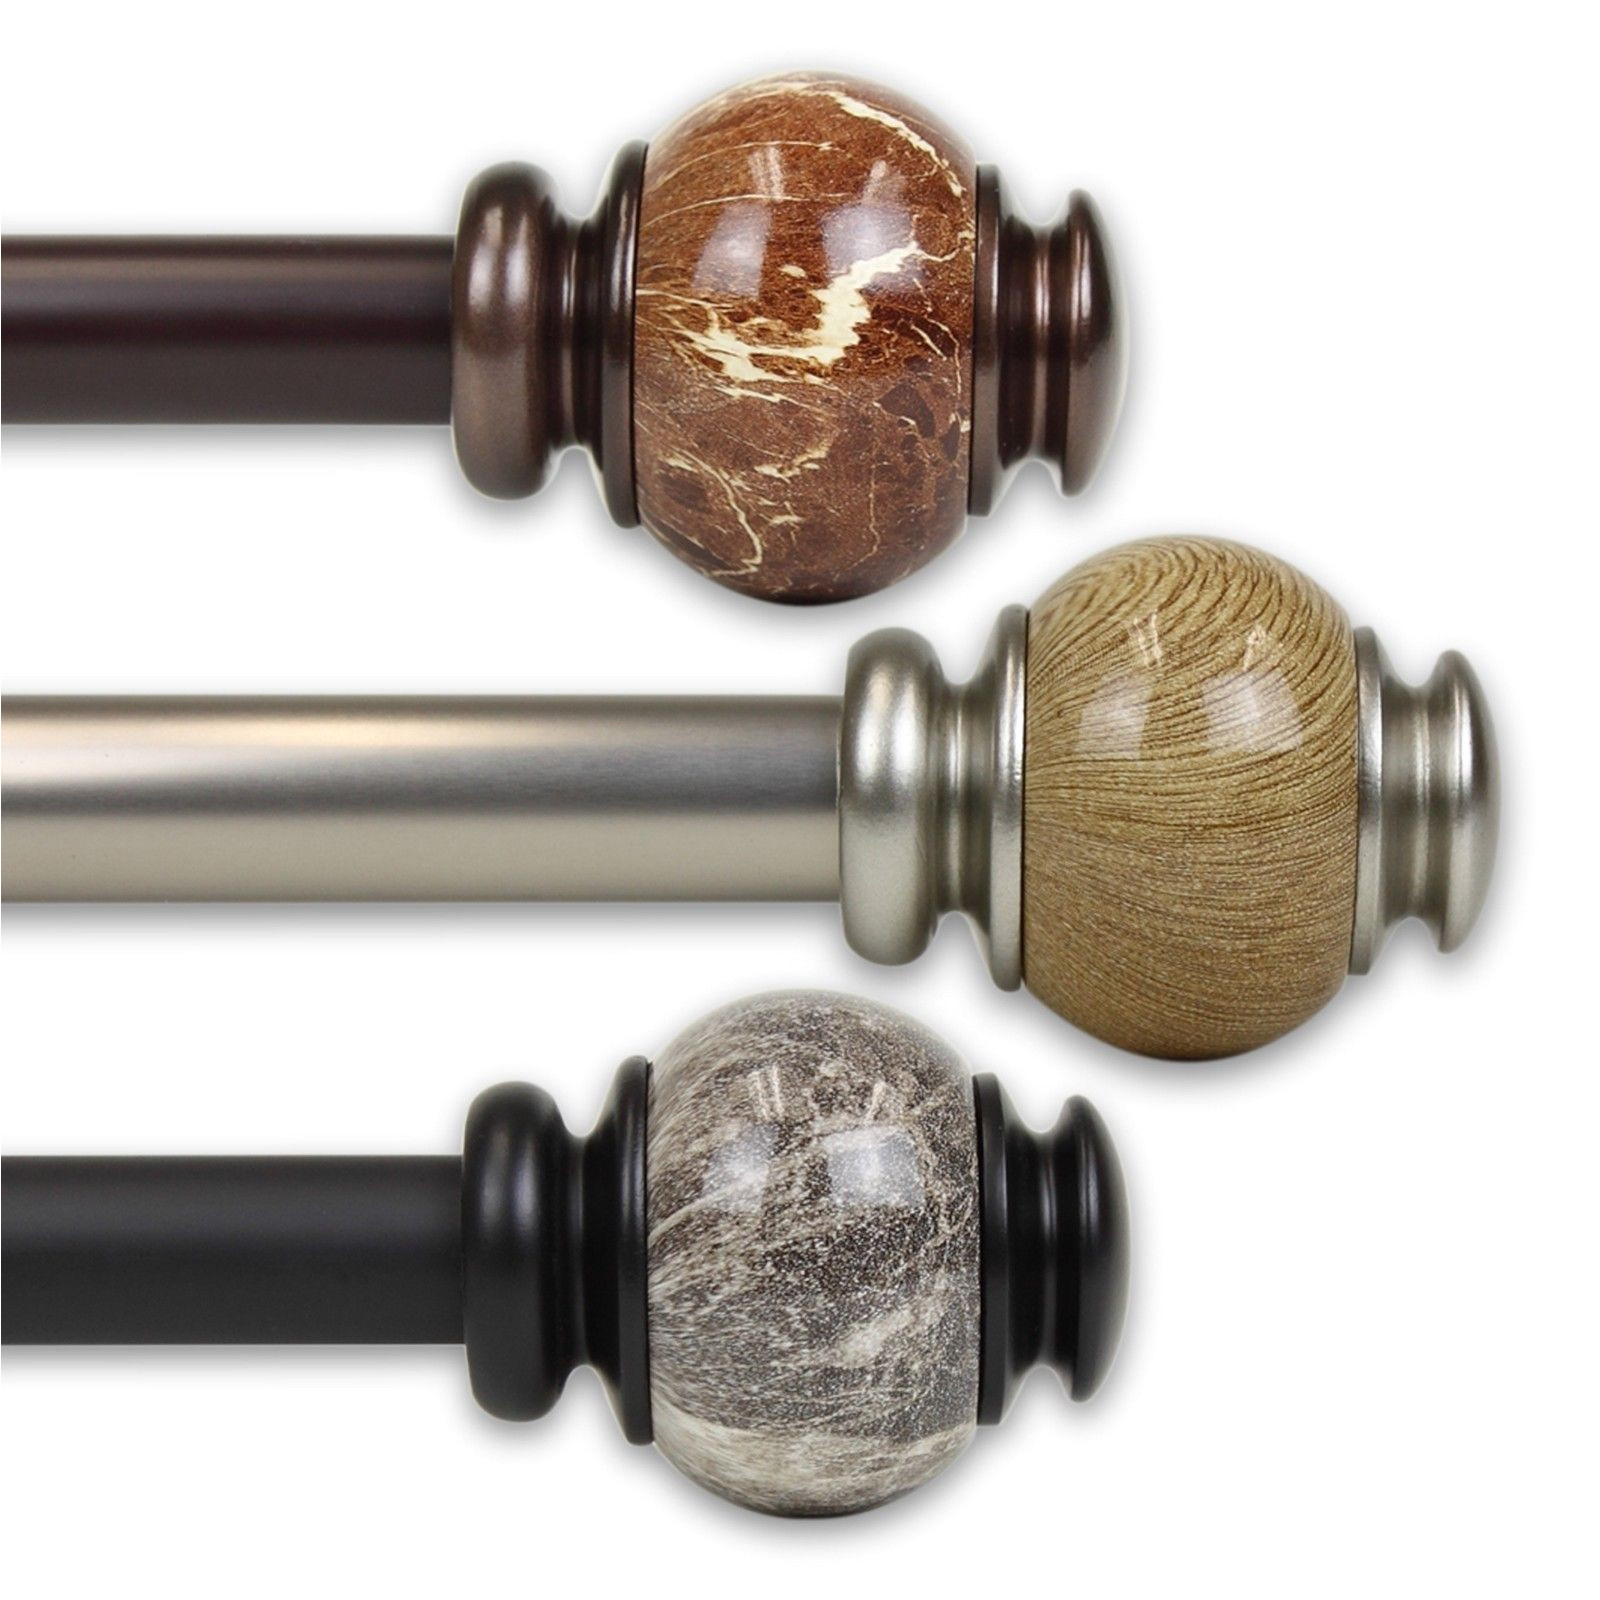 curtain rods and finials 103459 obsidian curtain rod 1 od 10 25 choose